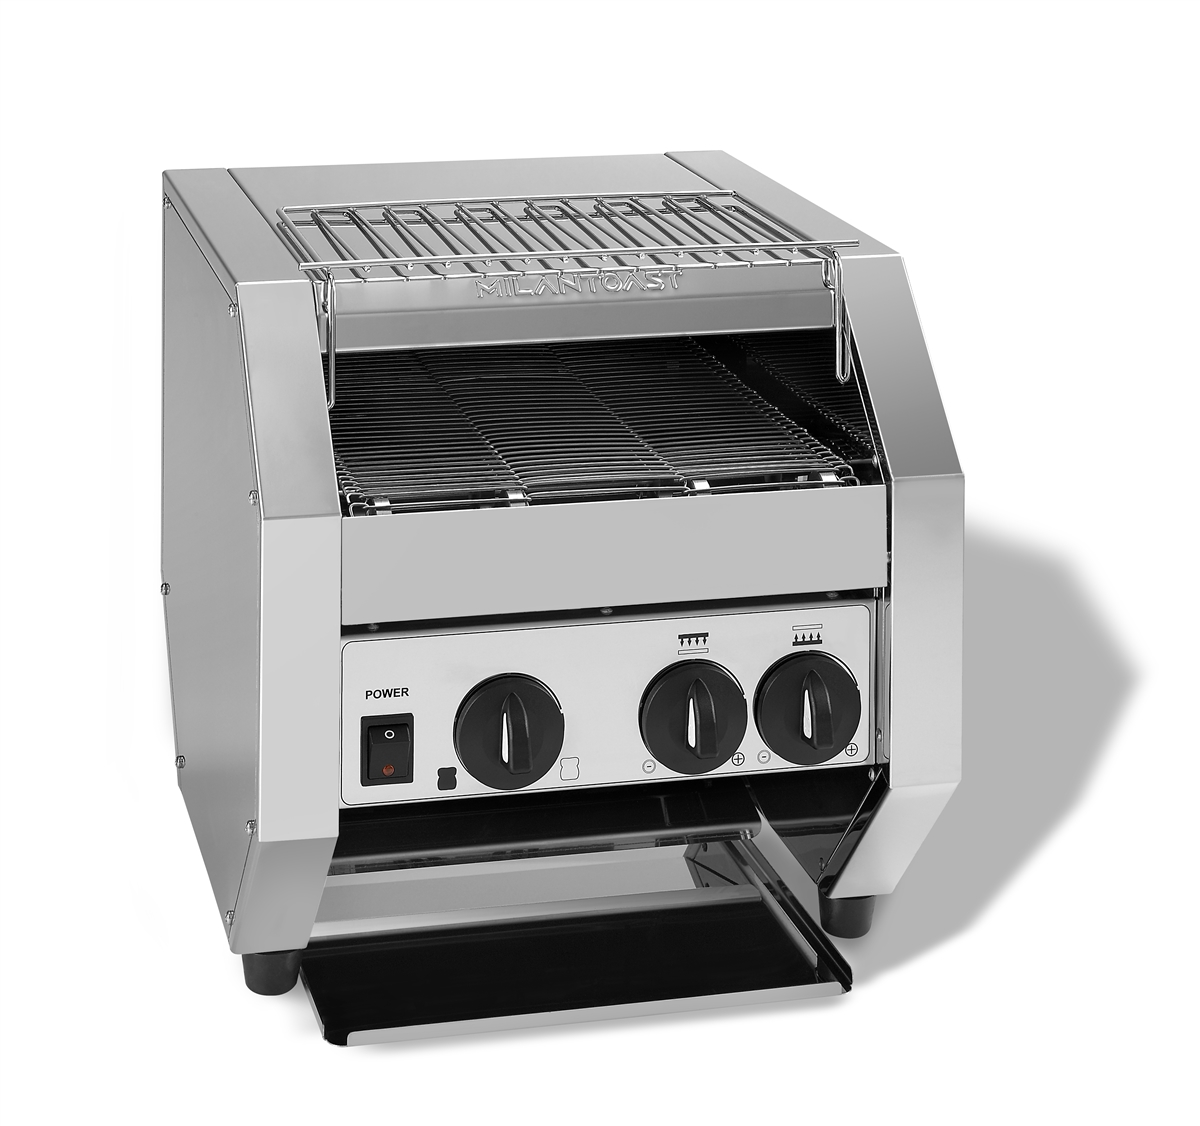 3 slices belt toaster with knob protection FULL OPTIONAL 220-240v 50 / 60hz 2,8kw